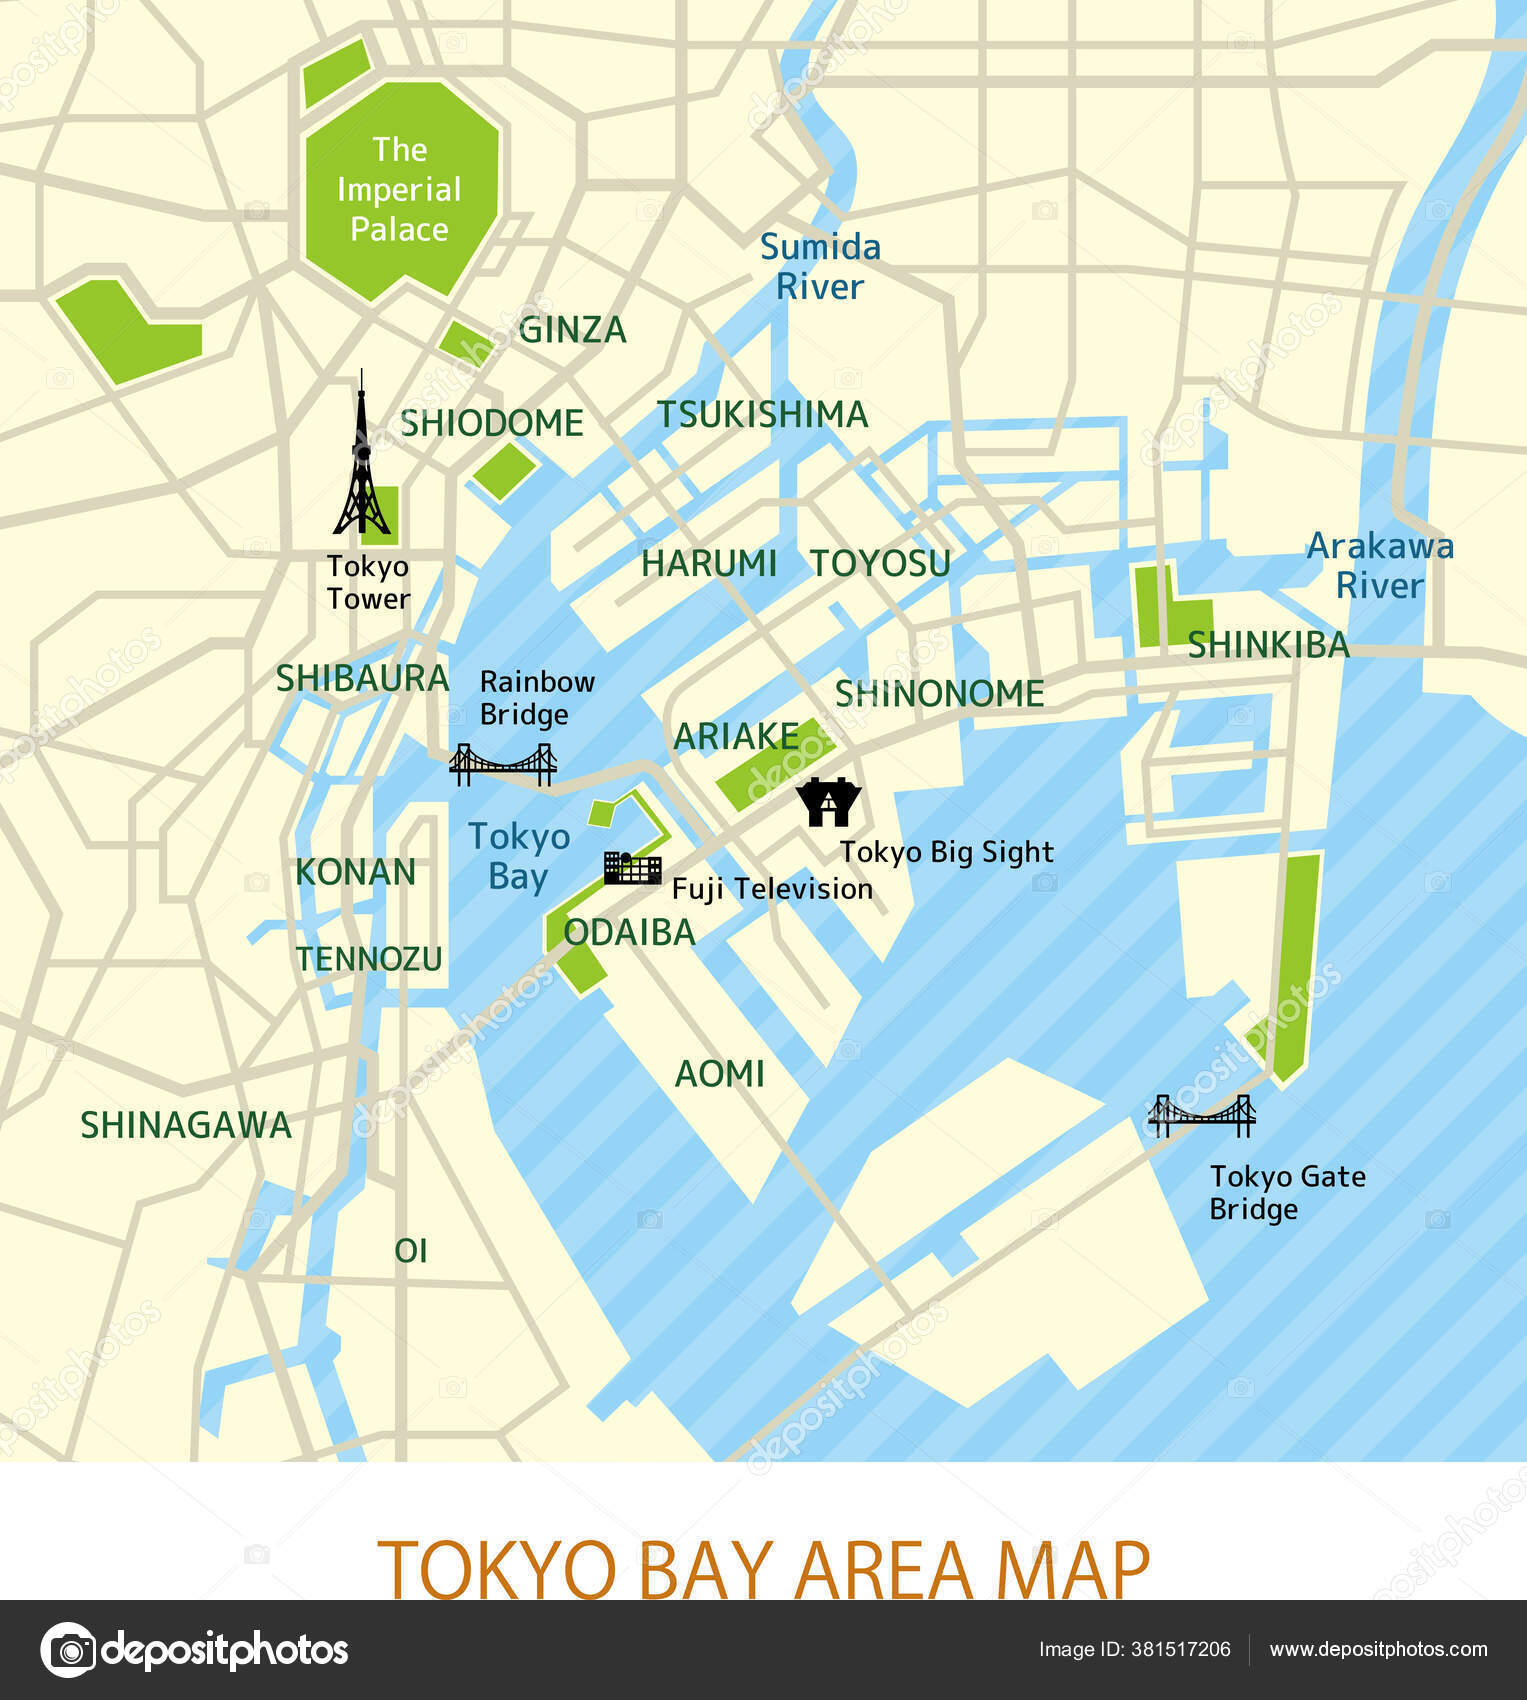 Áˆ Bay Area Map Stock Vectors Royalty Free Bay Area Map Illustrations Download On Depositphotos File:california bay area county map.svg. https depositphotos com 381517206 stock illustration tokyo bay area road map html